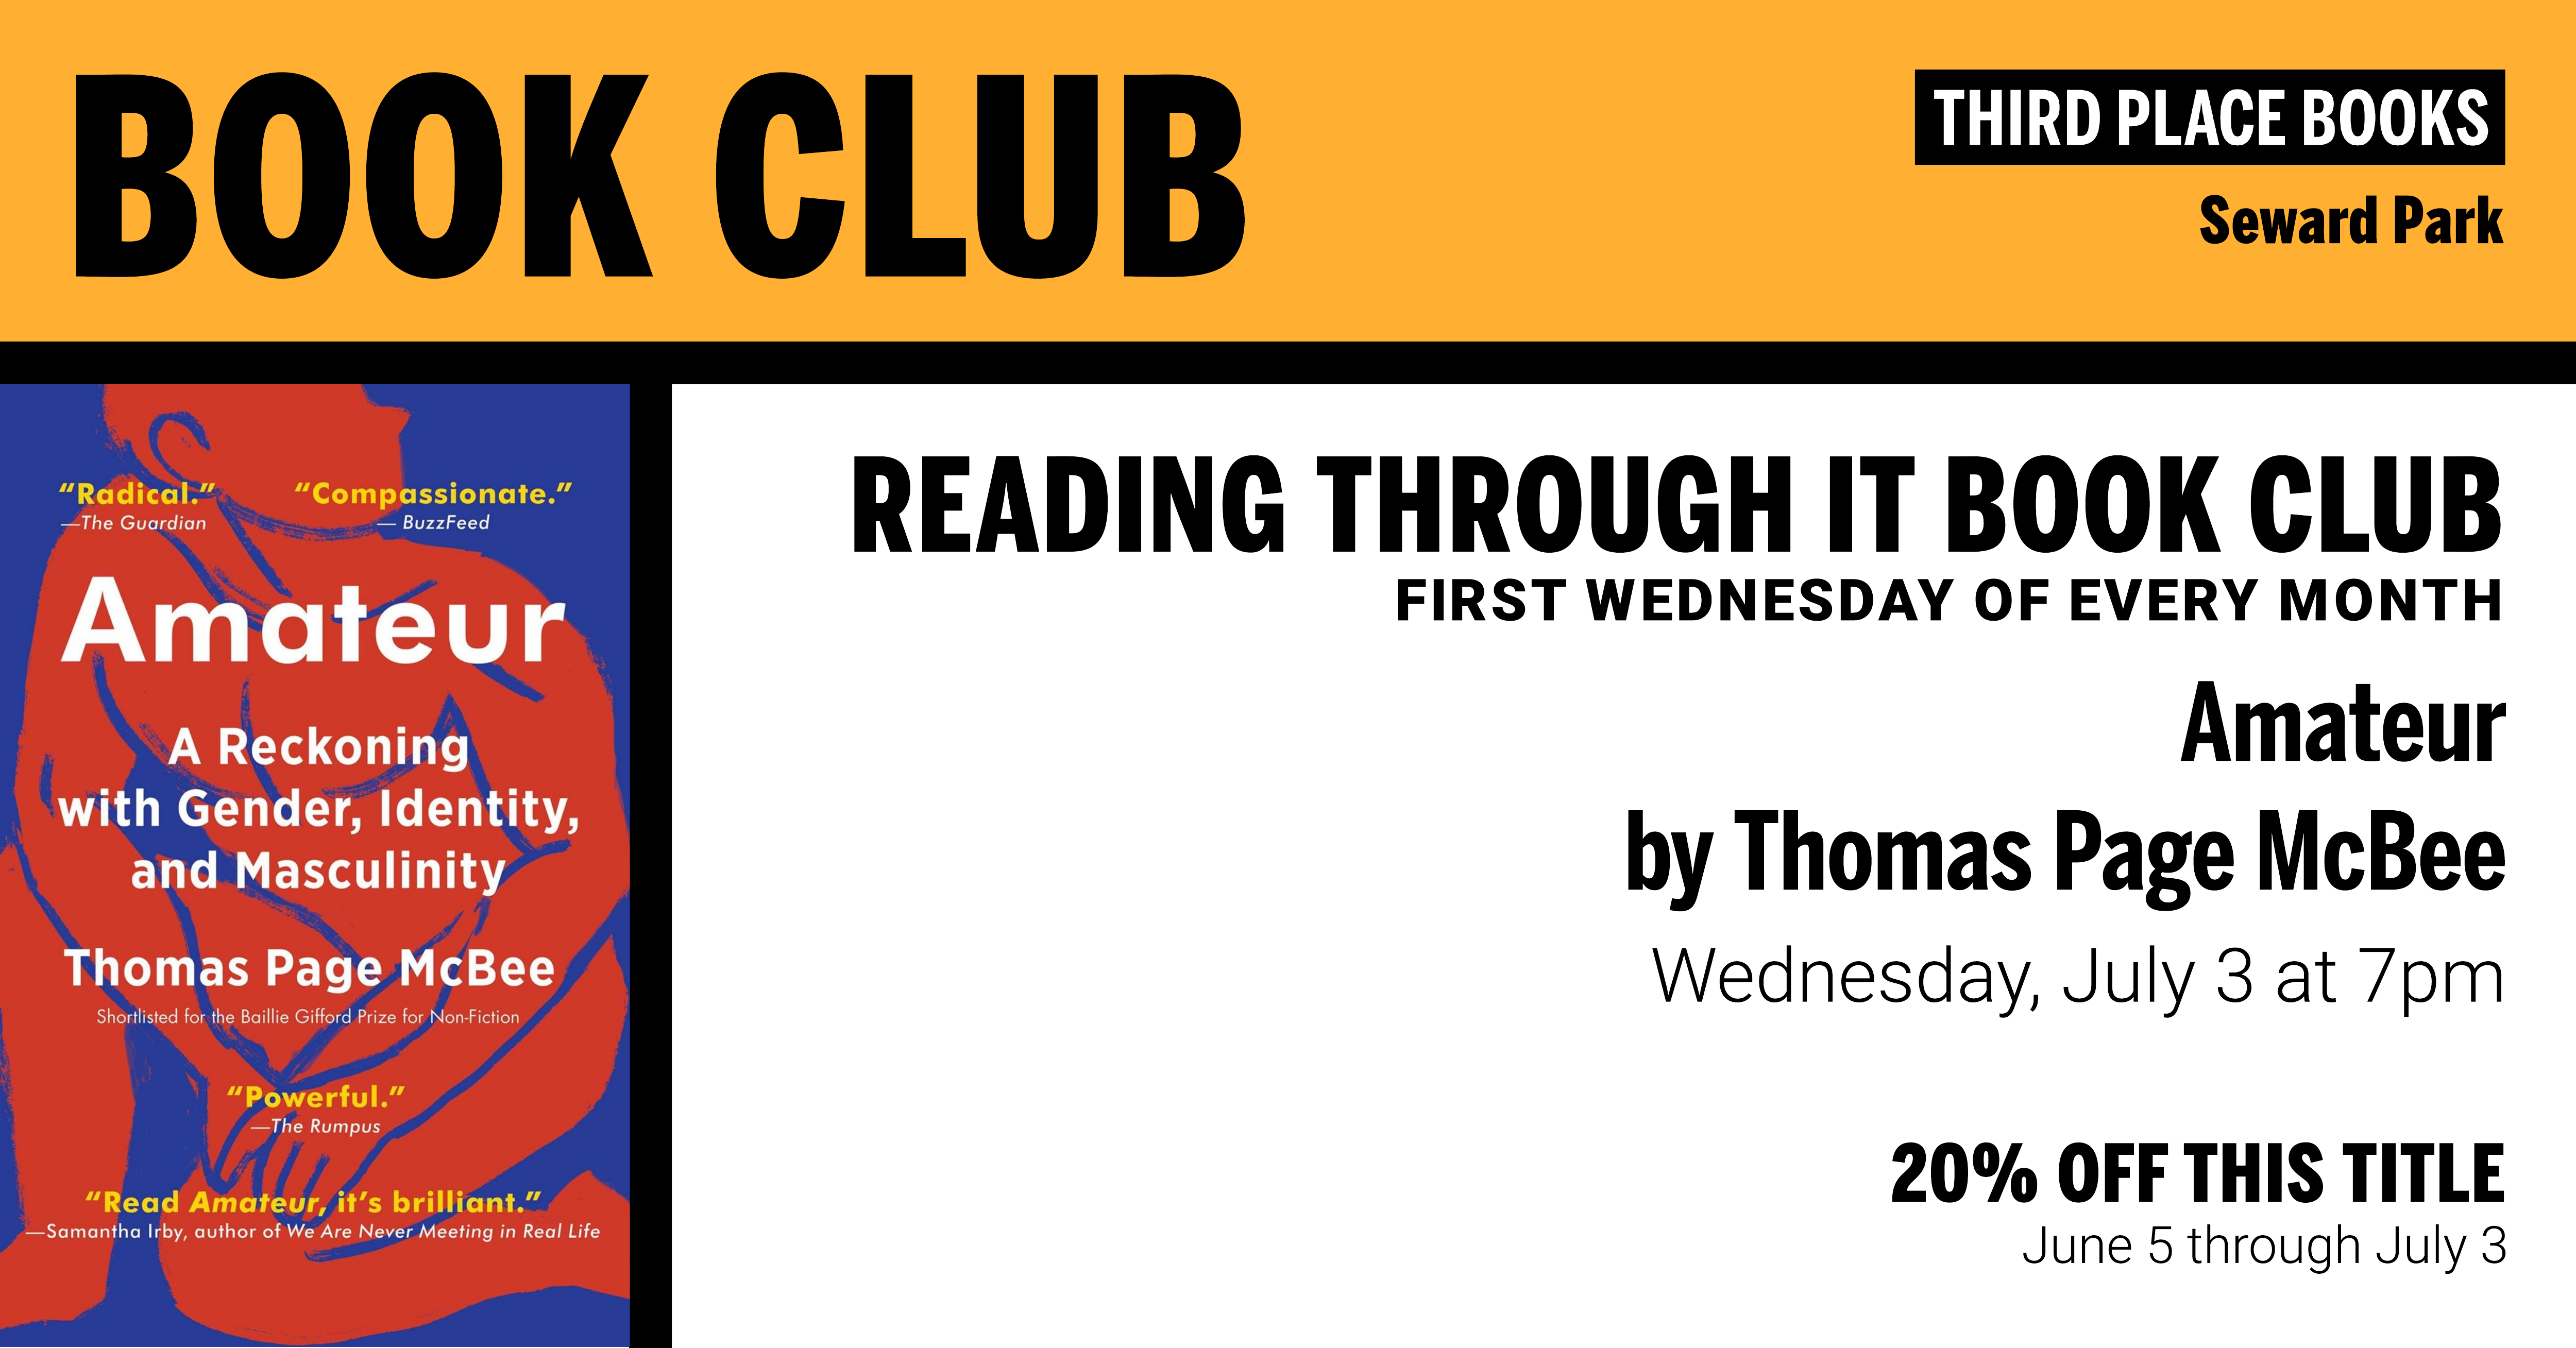 Reading Through It Book Club discussing Amateur by Thomas Page McBee on Wednesday, July 3 at 7pm